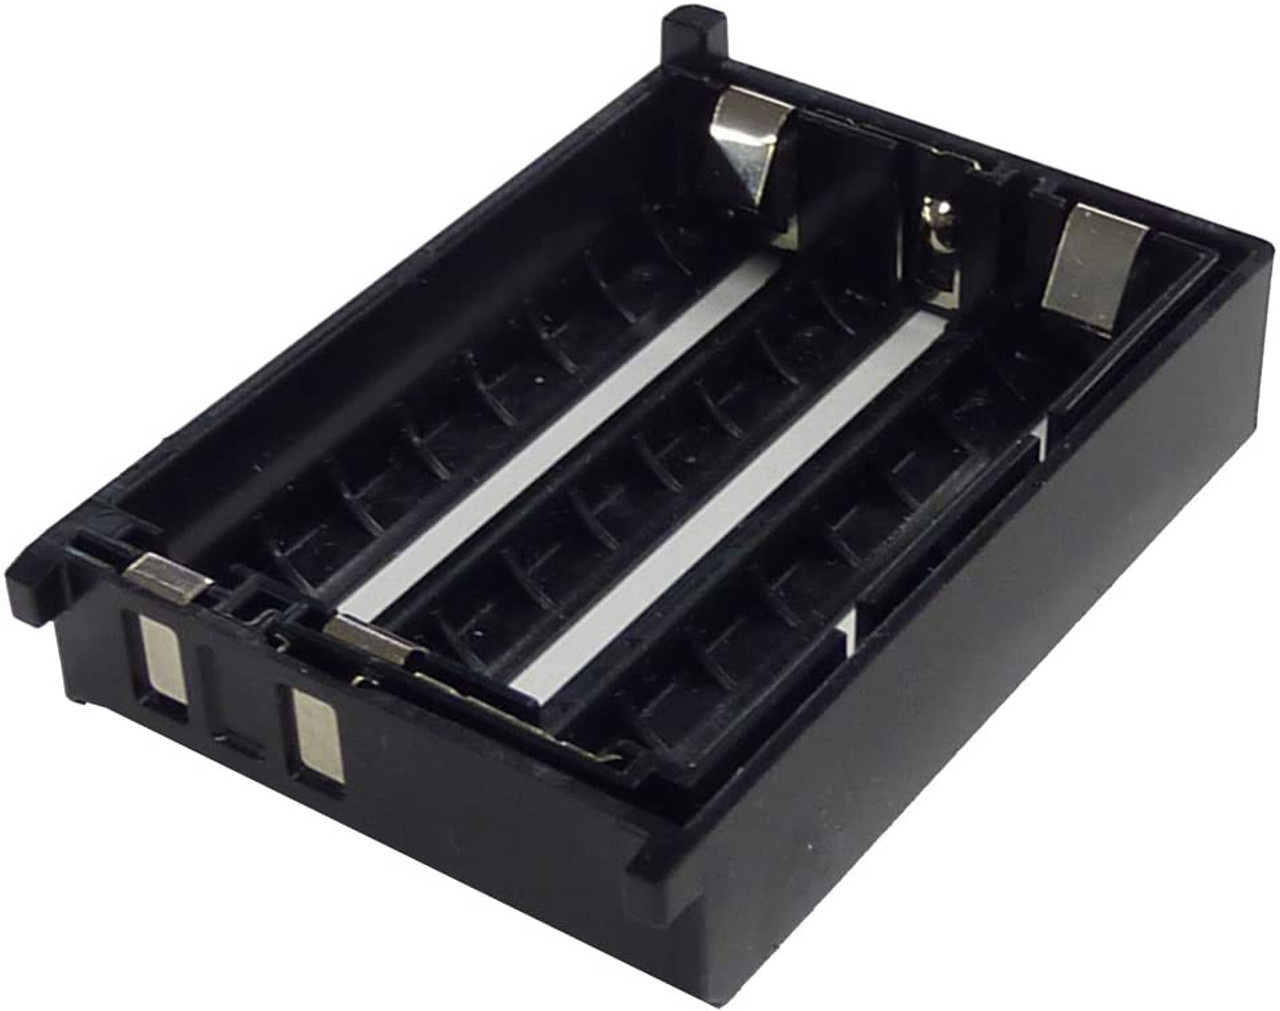 Standard Horizon FBA-44 Alkaline Battery Tray for HX300 Handheld Marine Radios